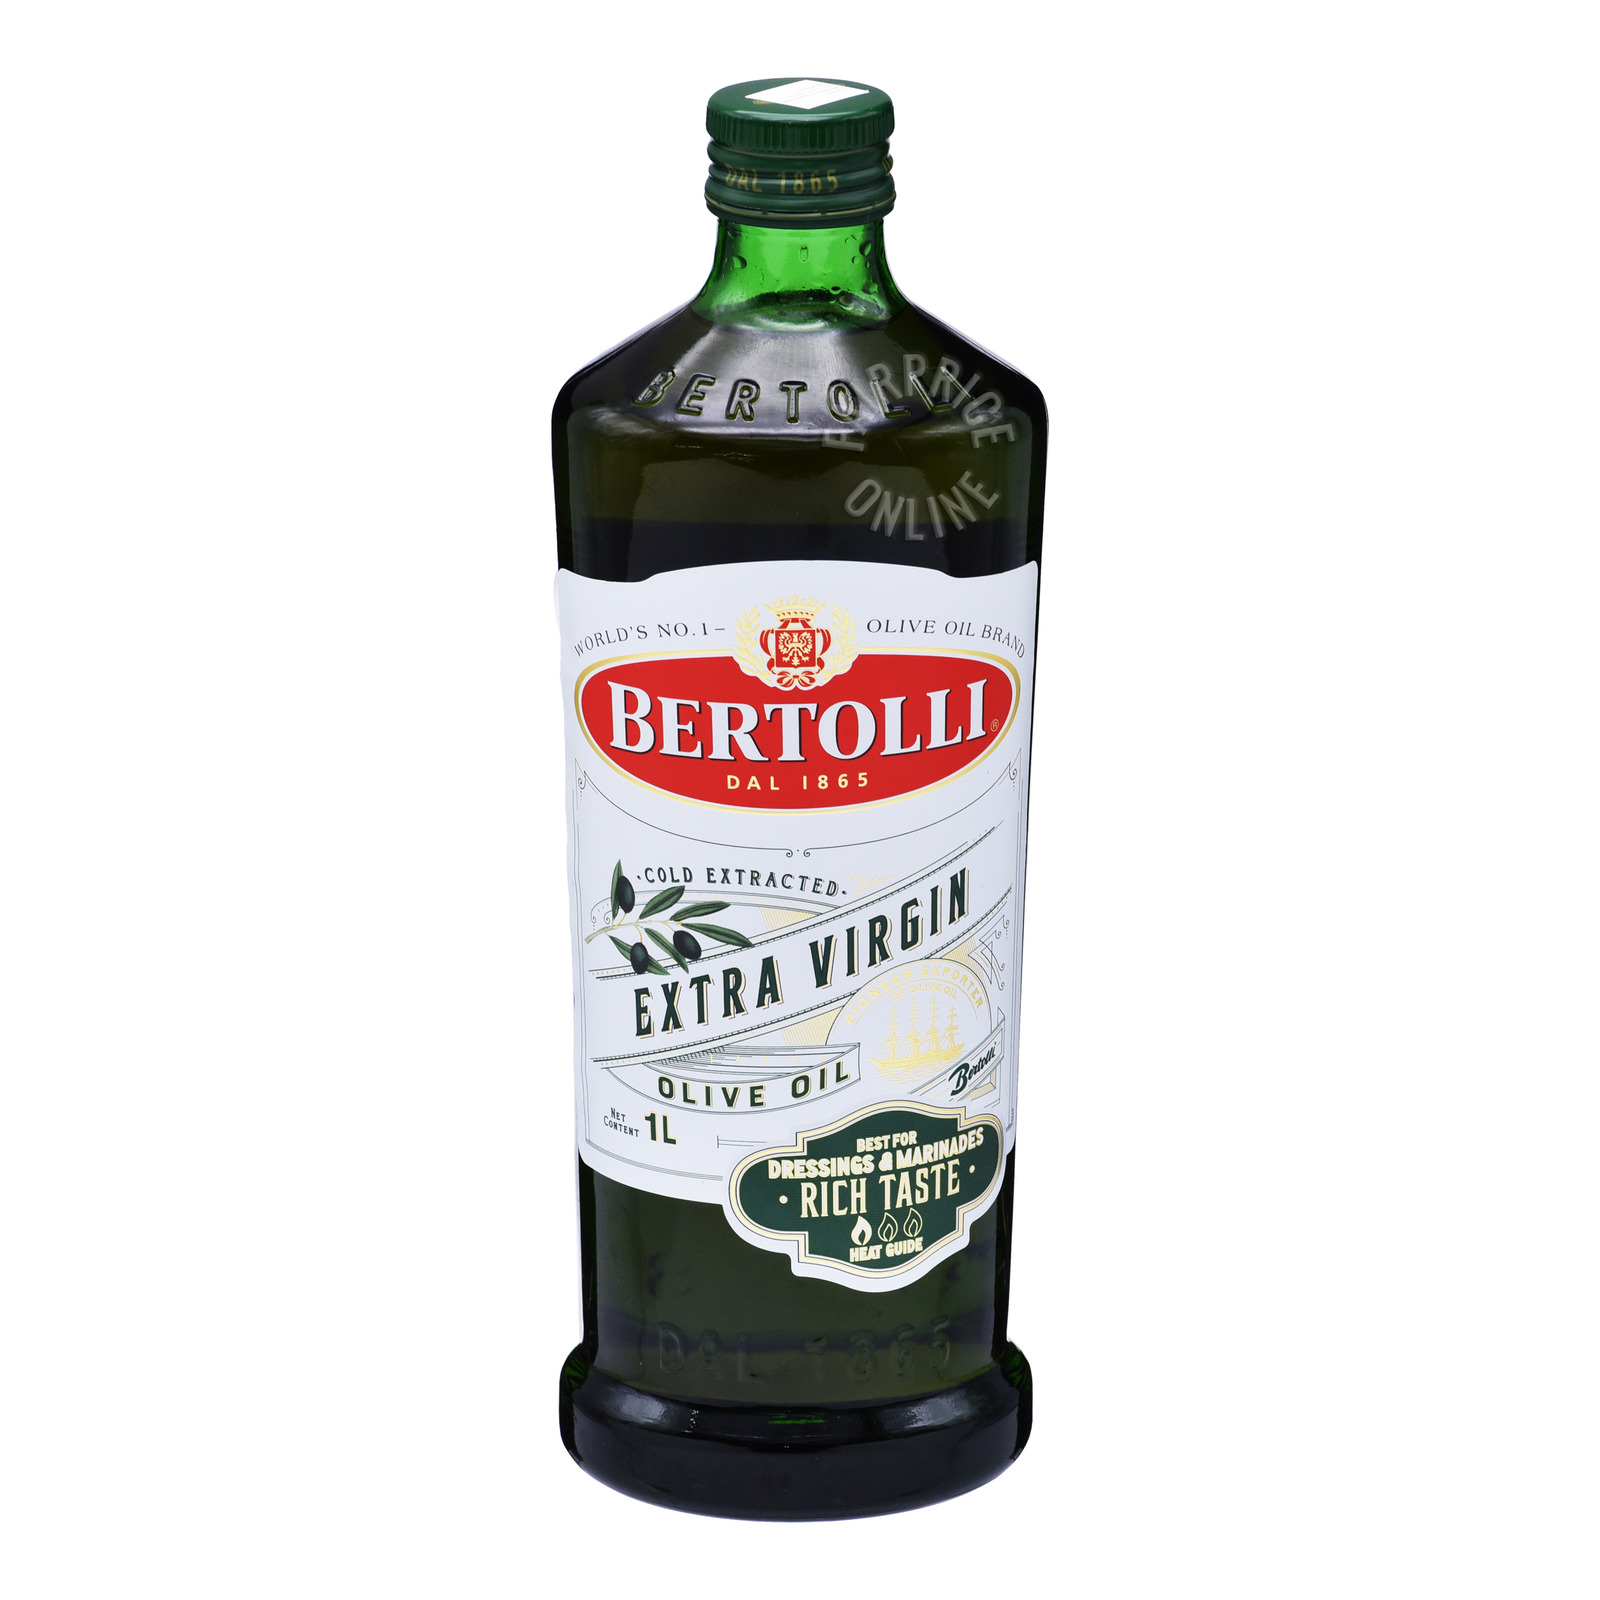 Bertolli Olive Oil - Extra Virgin